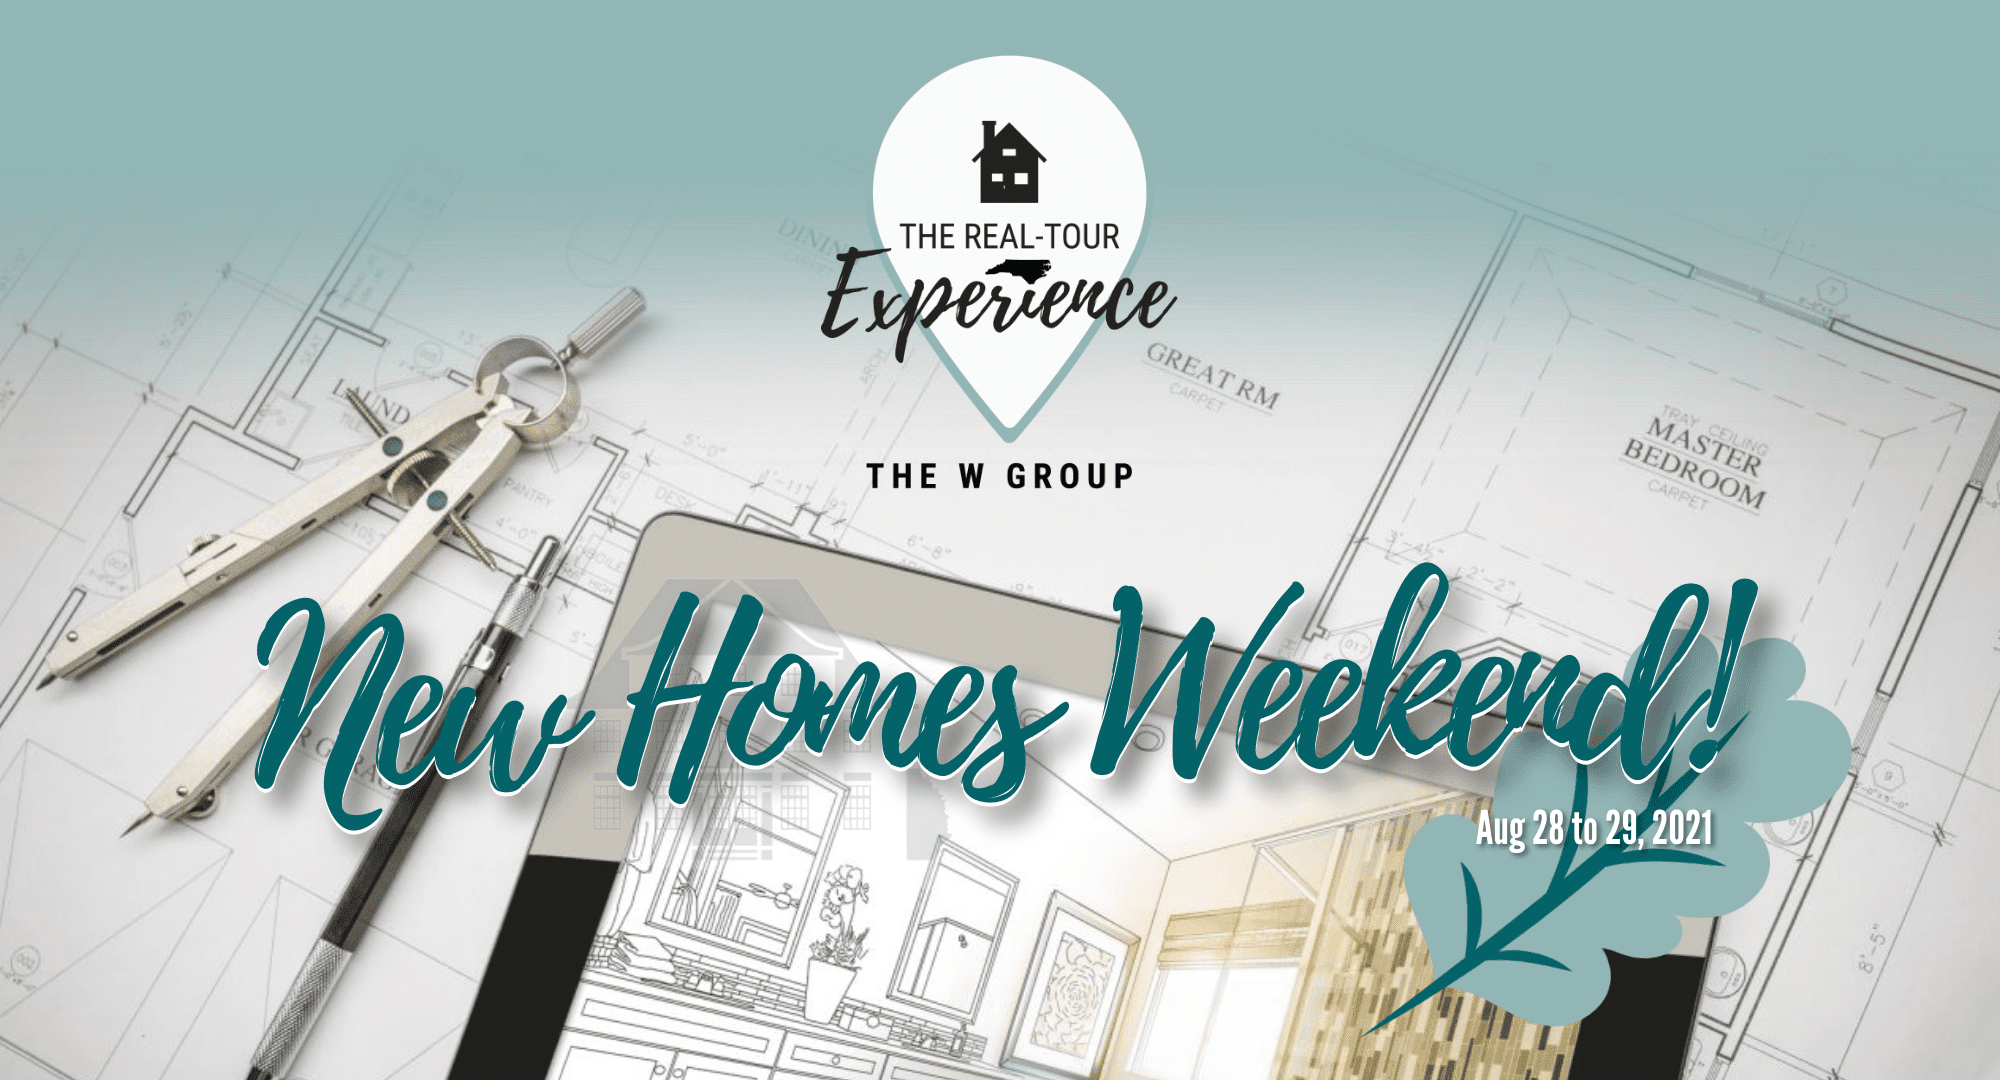 The Real-Tour Experience New Homes Weekend